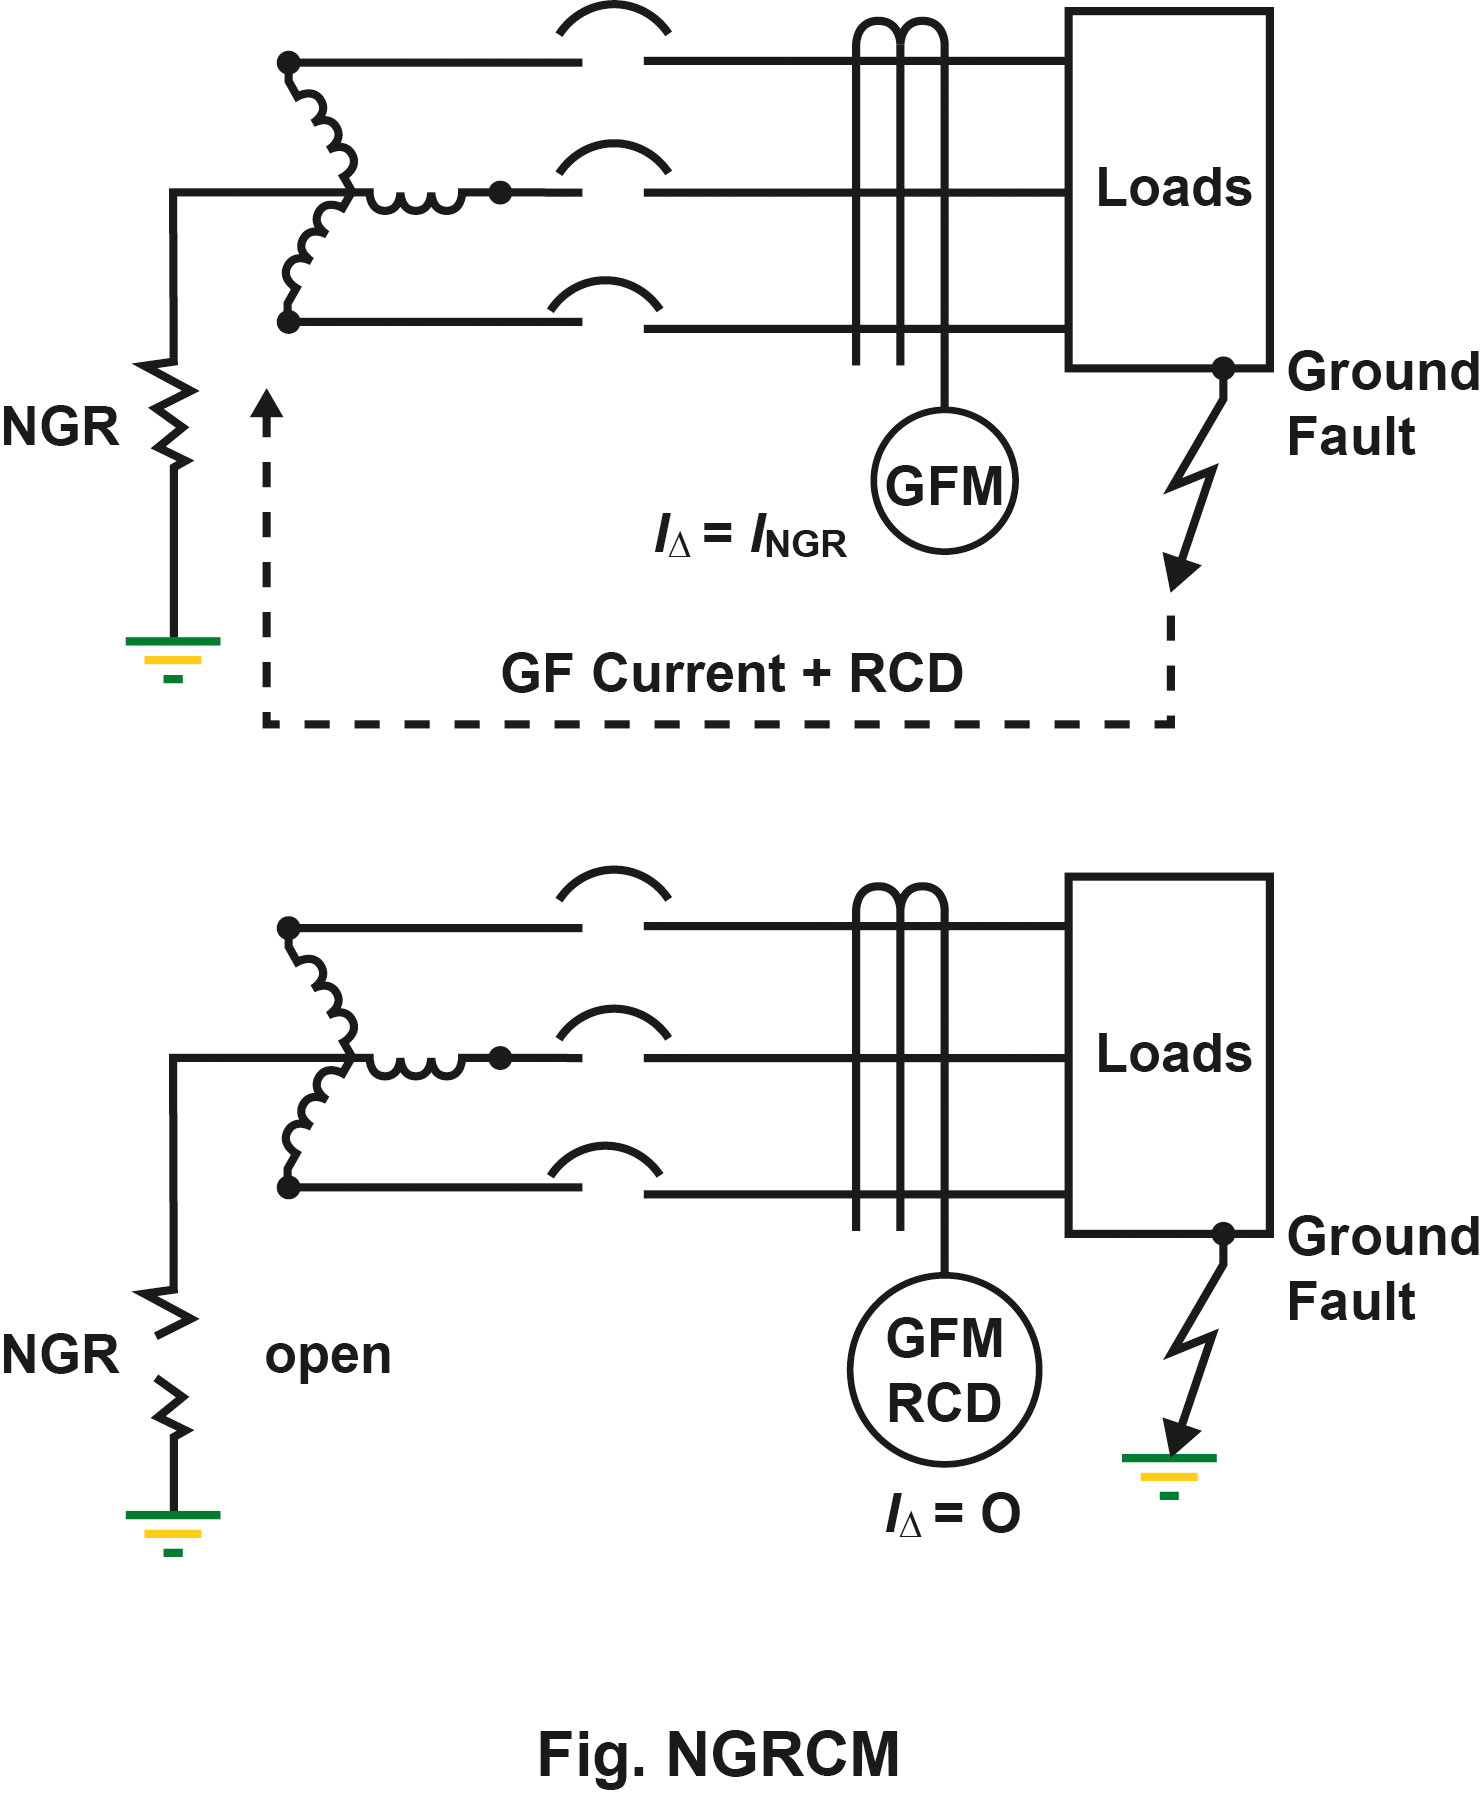 Conversion Of A Solidly Grounded System Into An Hrg Bender Protection Lv Generator Set And The Downstream Circuits Like Higher Level Equipment Damage Or Arc Flash Continuously Monitor Ngr For Resistance Reduction To Alert Operators This Condition